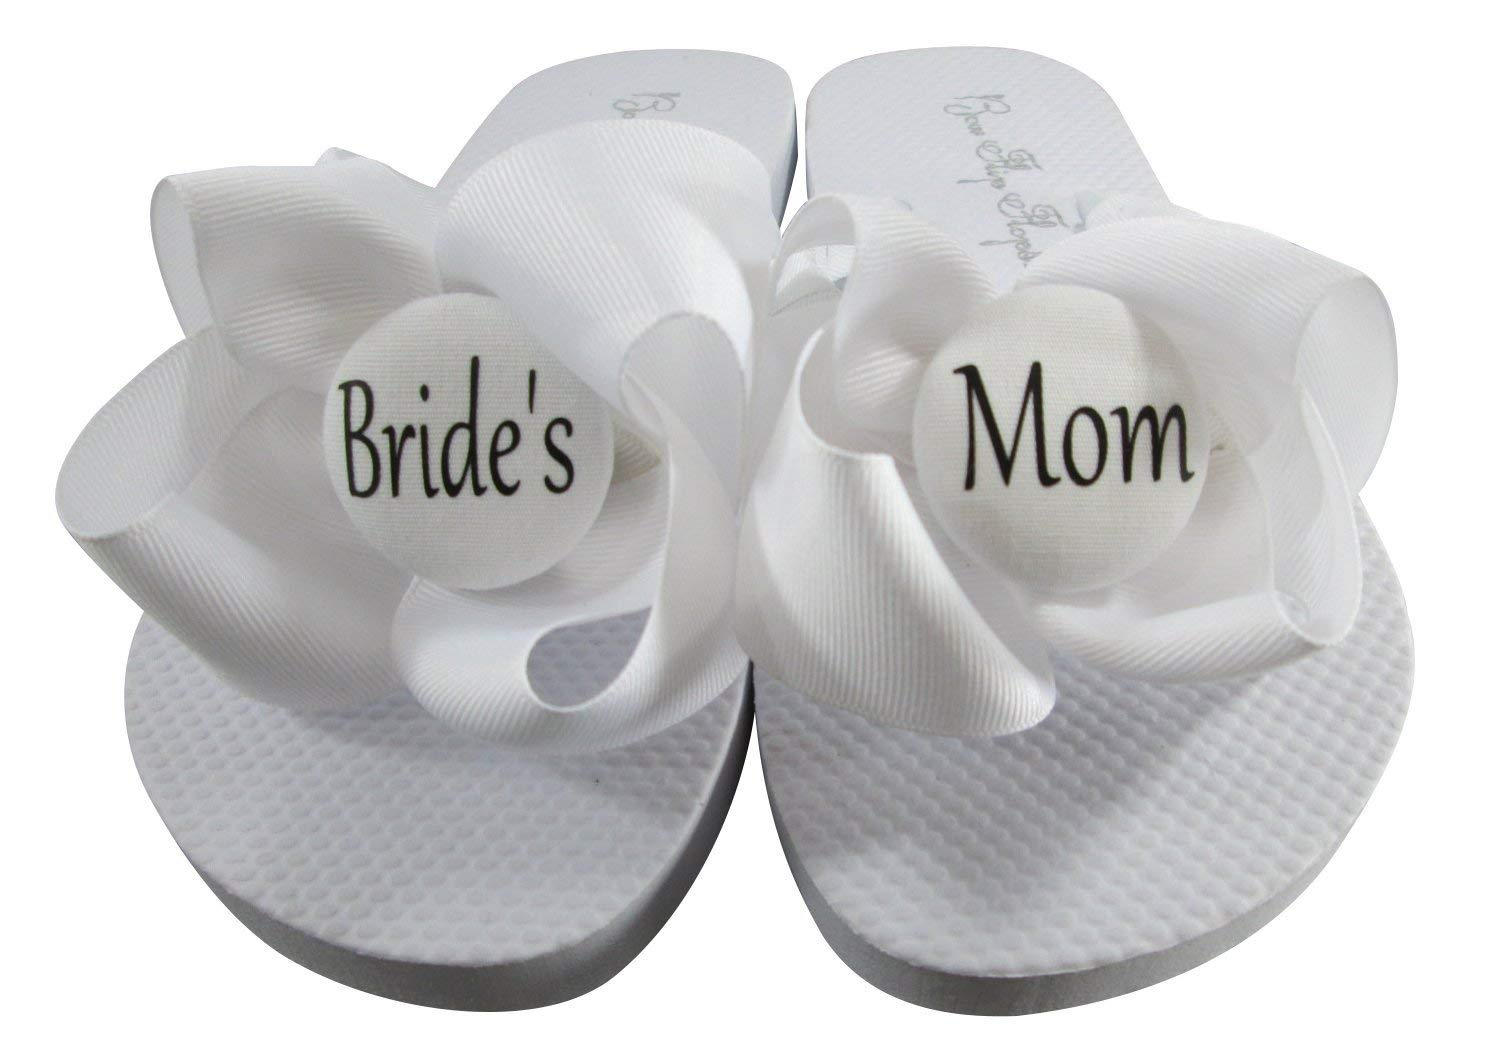 598cae100 All White with Black Lettering Bride s Mom Flip Flops for cute wedding  shower gift